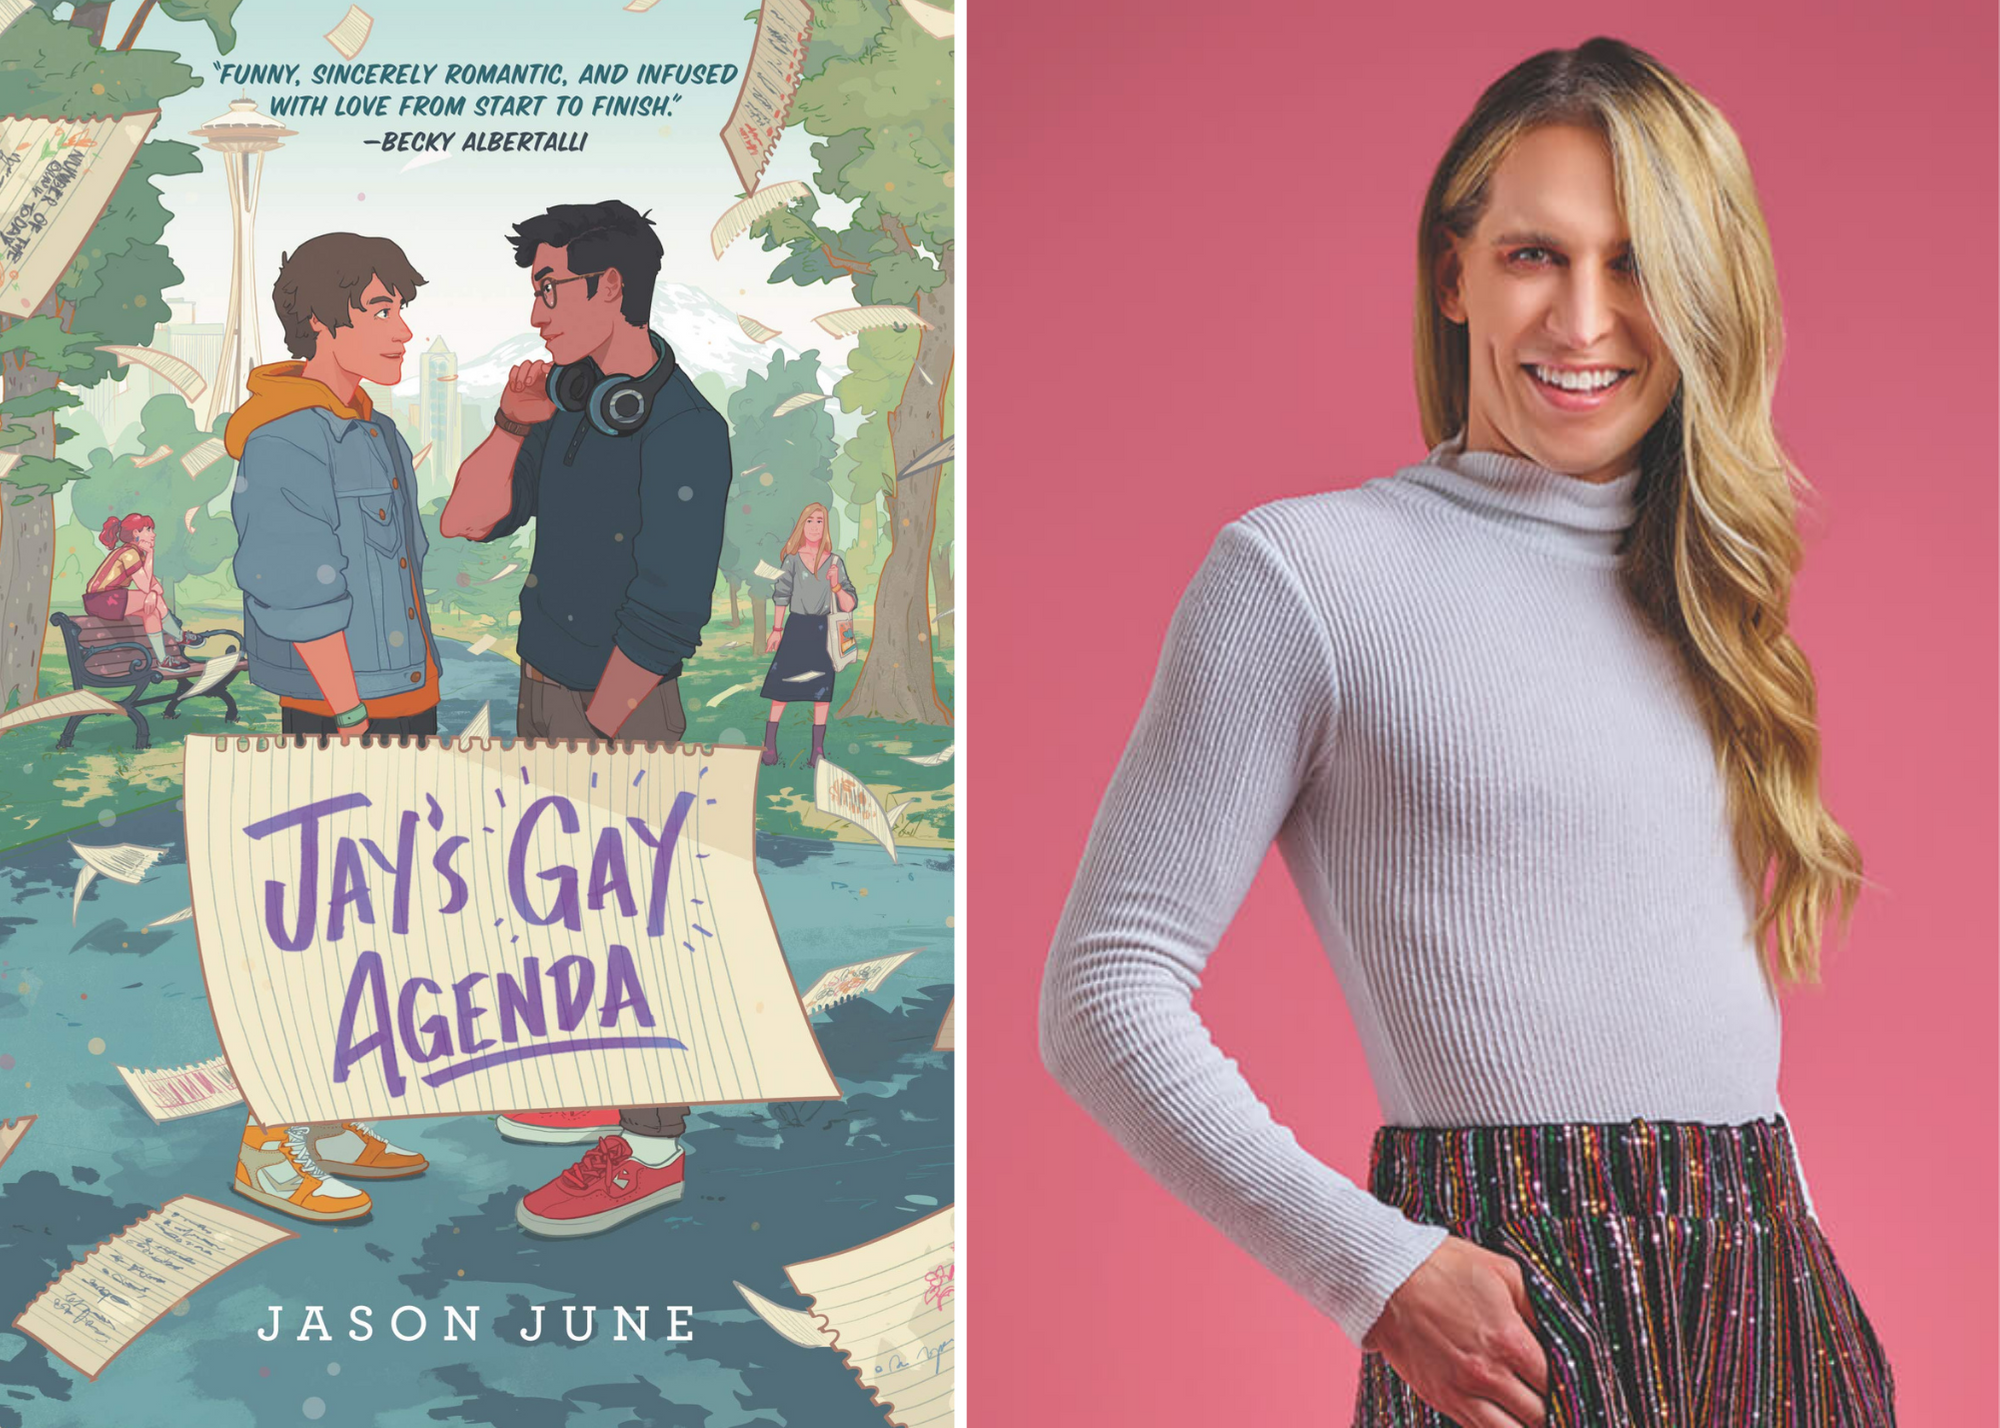 BOOK REVIEW: 'Jays Gay Agenda' by Jason June is a Book I Wanted to Like